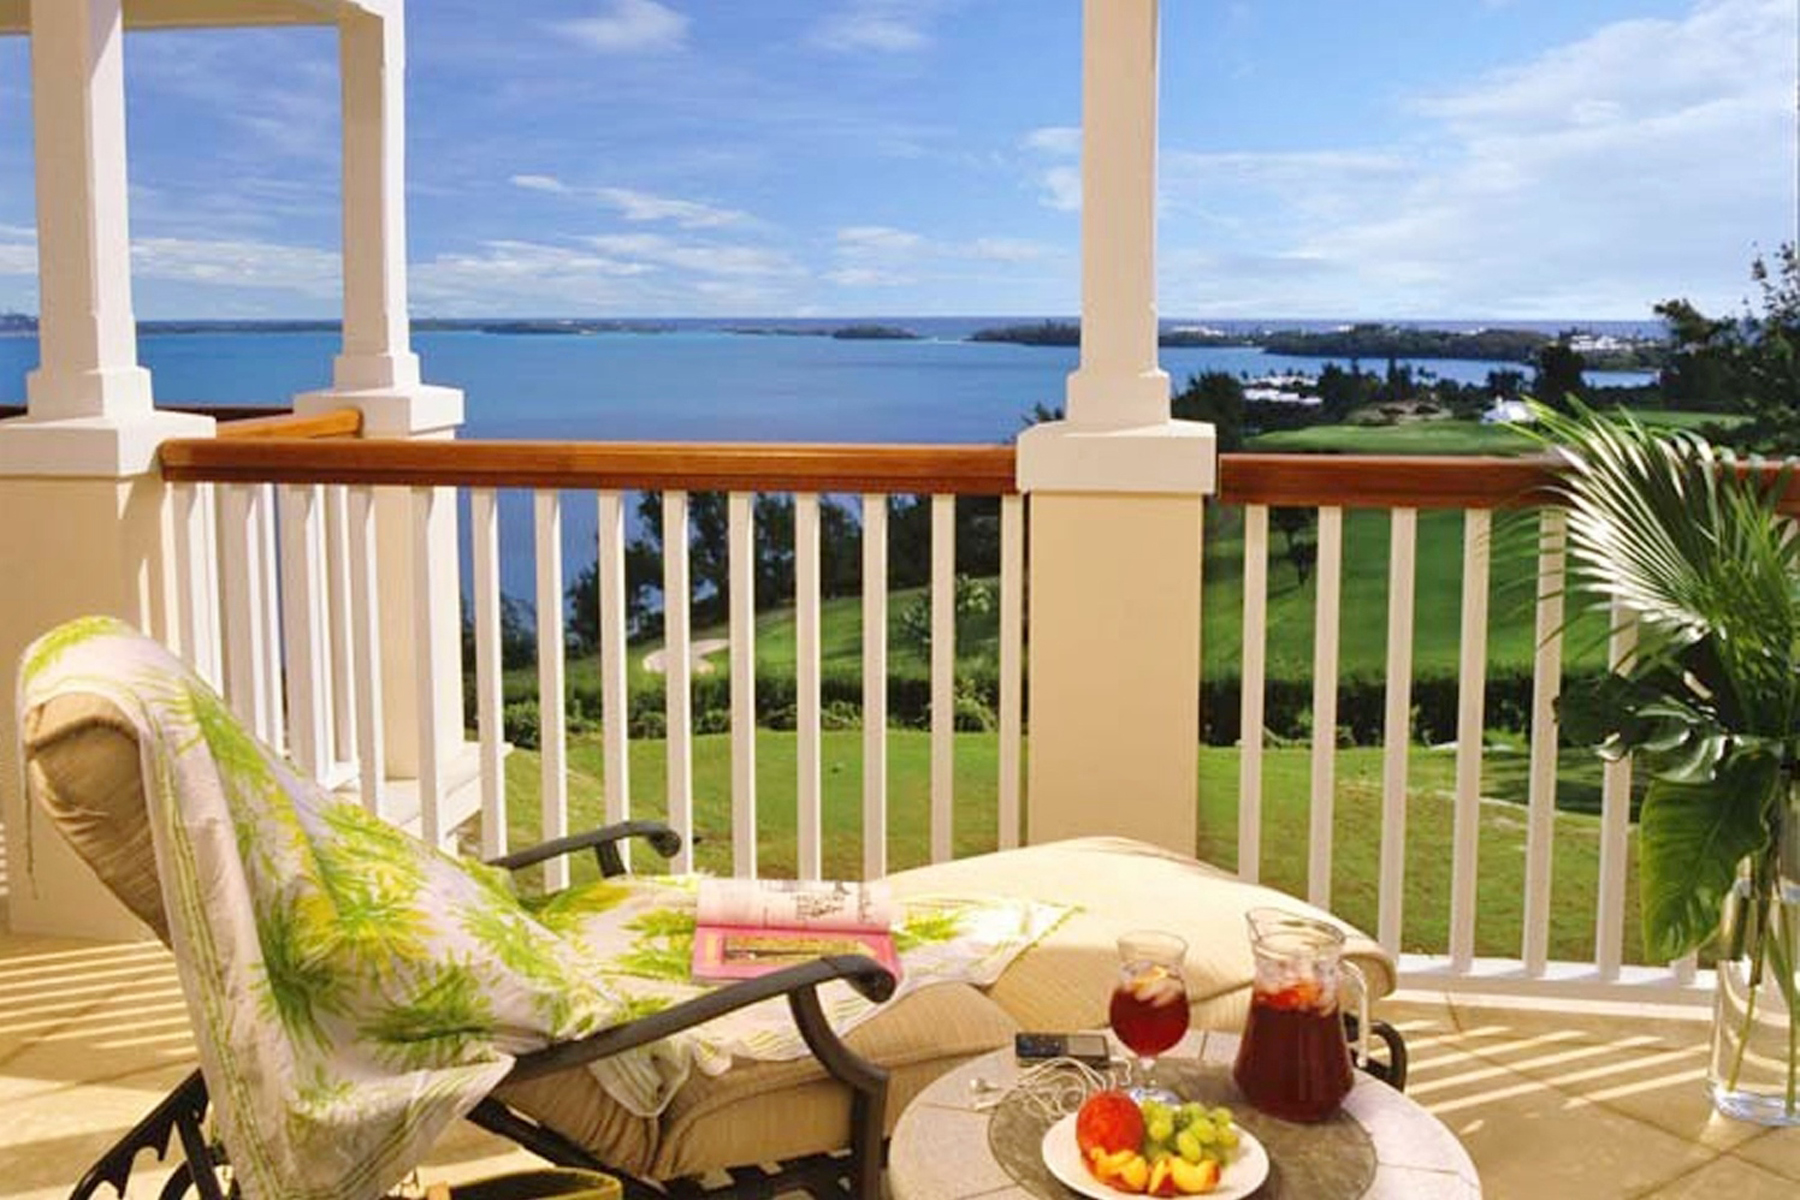 Fractional Ownership Properties for Sale at Tucker's Point Golf Villa - 2 Bedroom St Georges Parish, Bermuda Bermuda